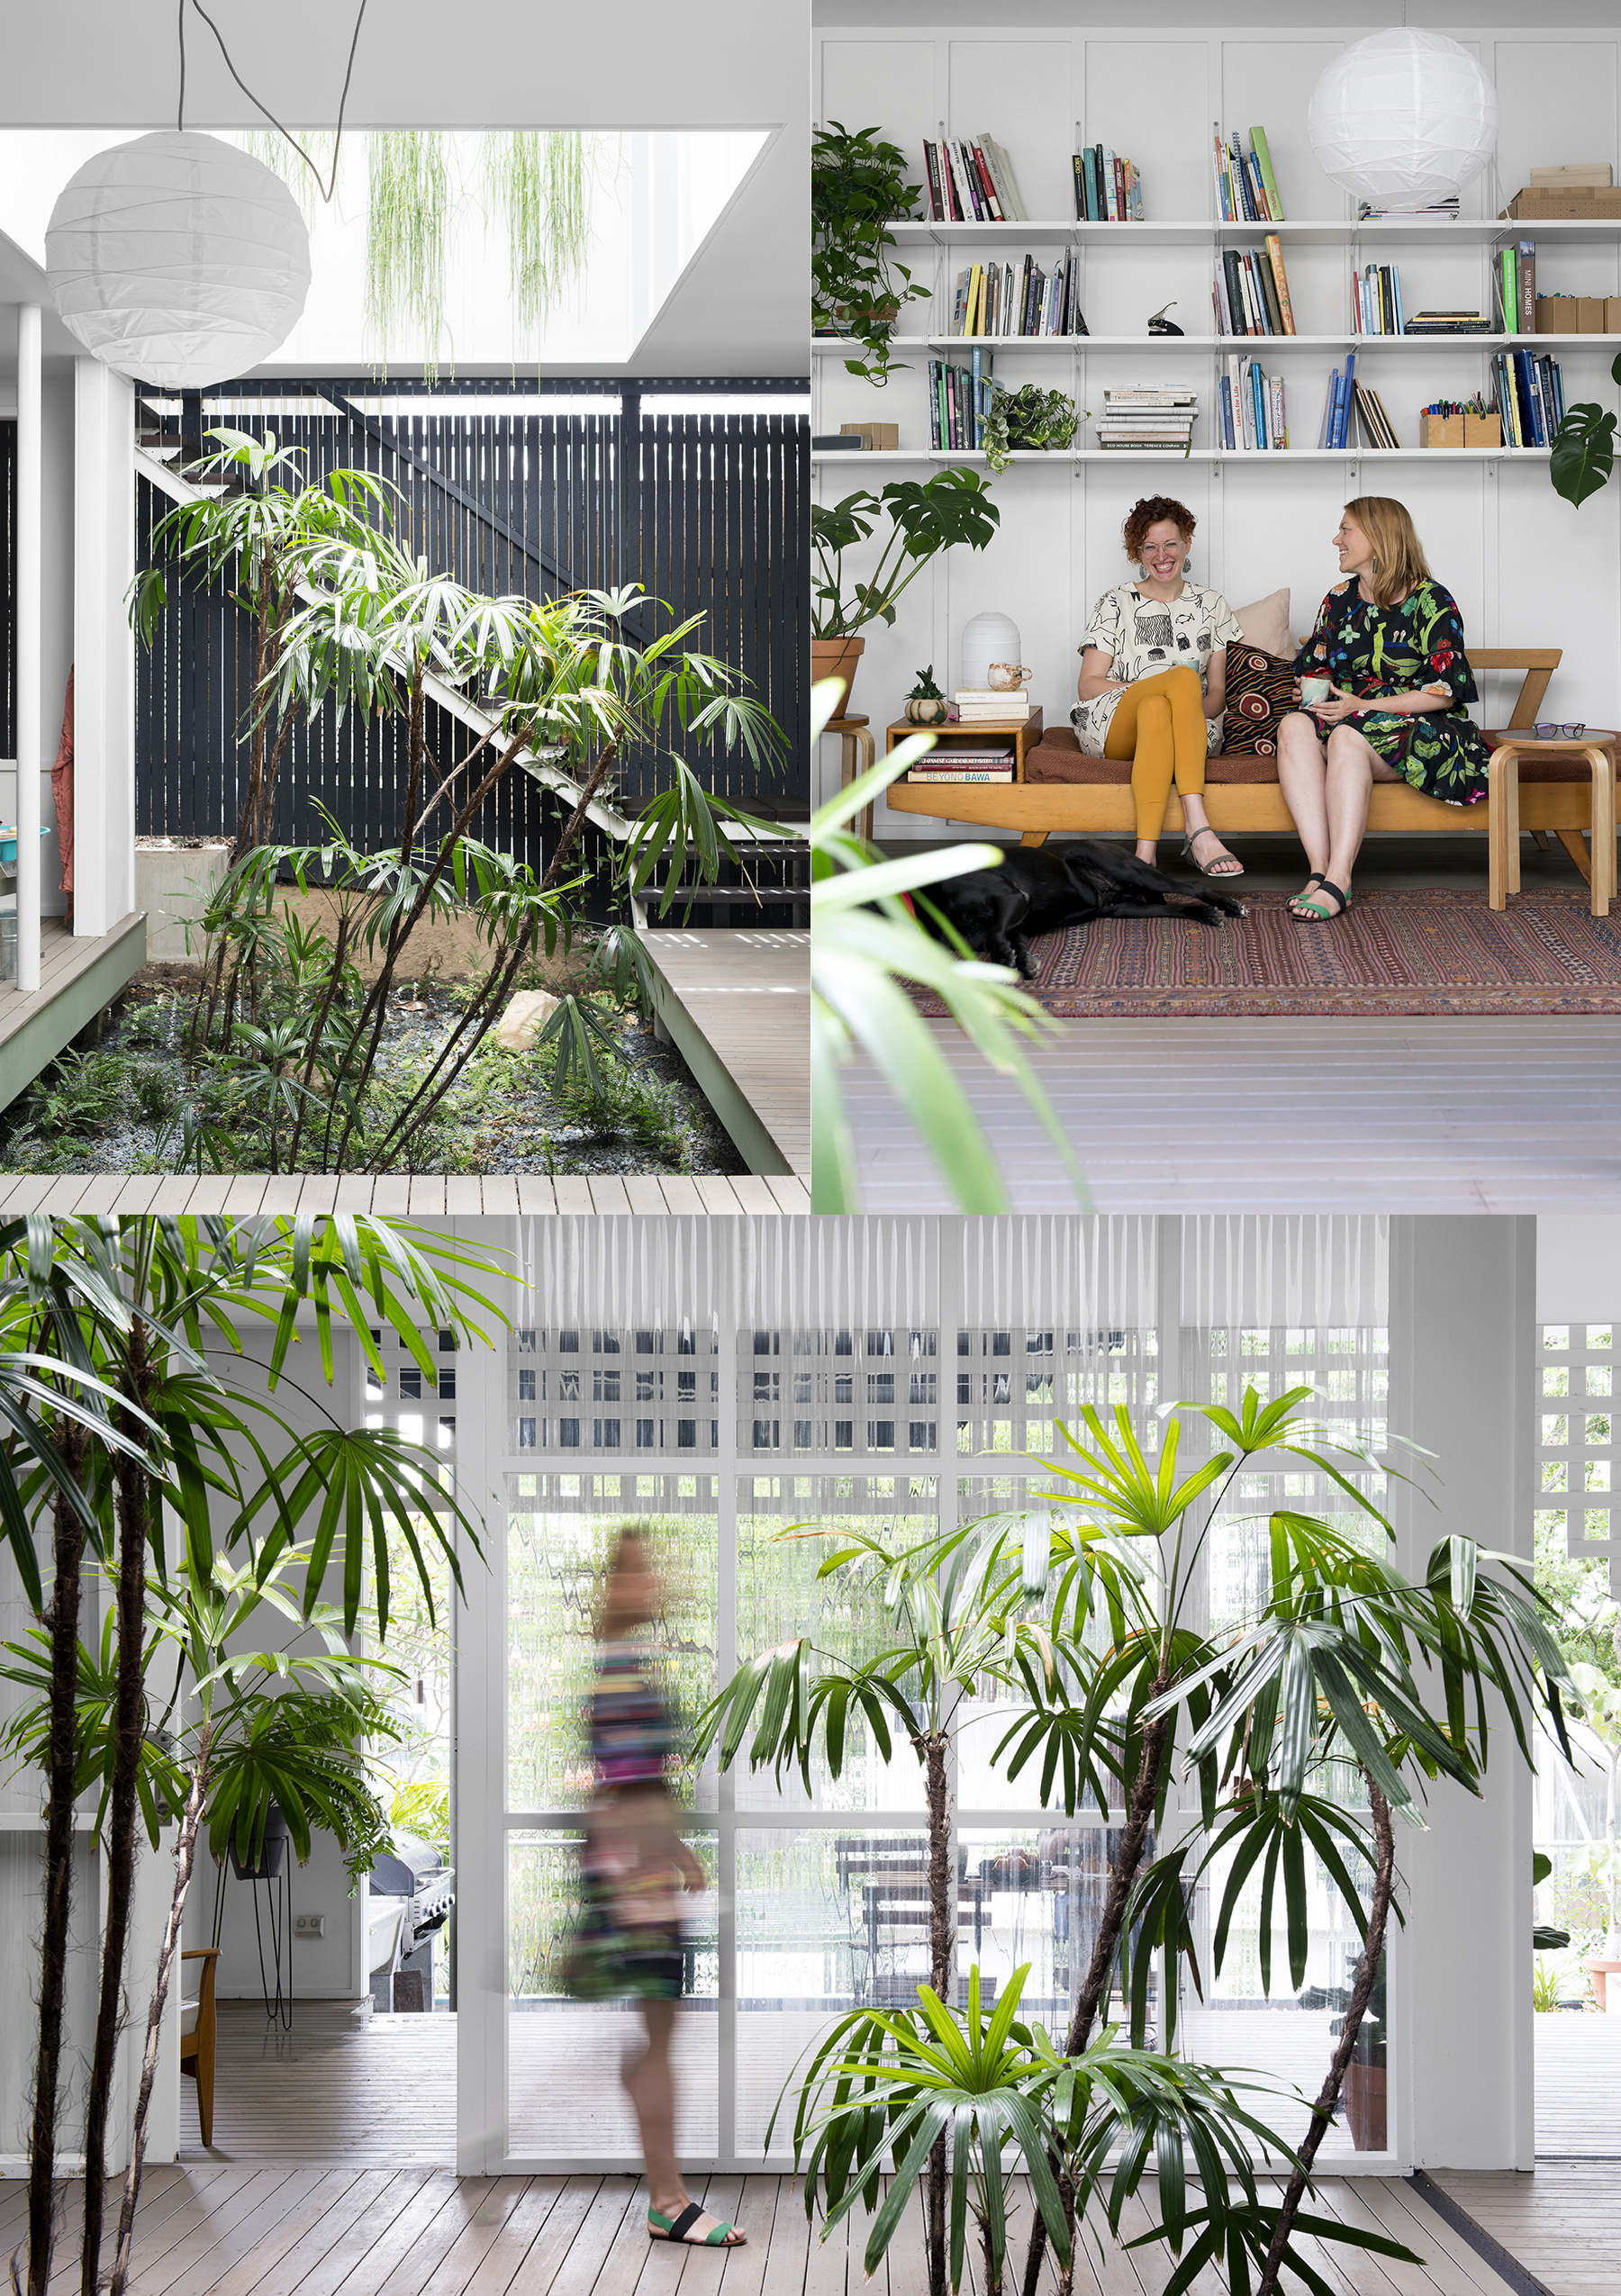 TOP LEFT: Hello sunshine! The atrium allows the plants to flourish. TOP RIGHT: Laura and Suzie talk about their upcoming workshop over a cuppa. BOTTOM: Suzie traverses the entryway heading toward the kitchen. Sliding doors open onto an extended balcony with additional table and seating options enabling them to spread out when hosting larger groups.